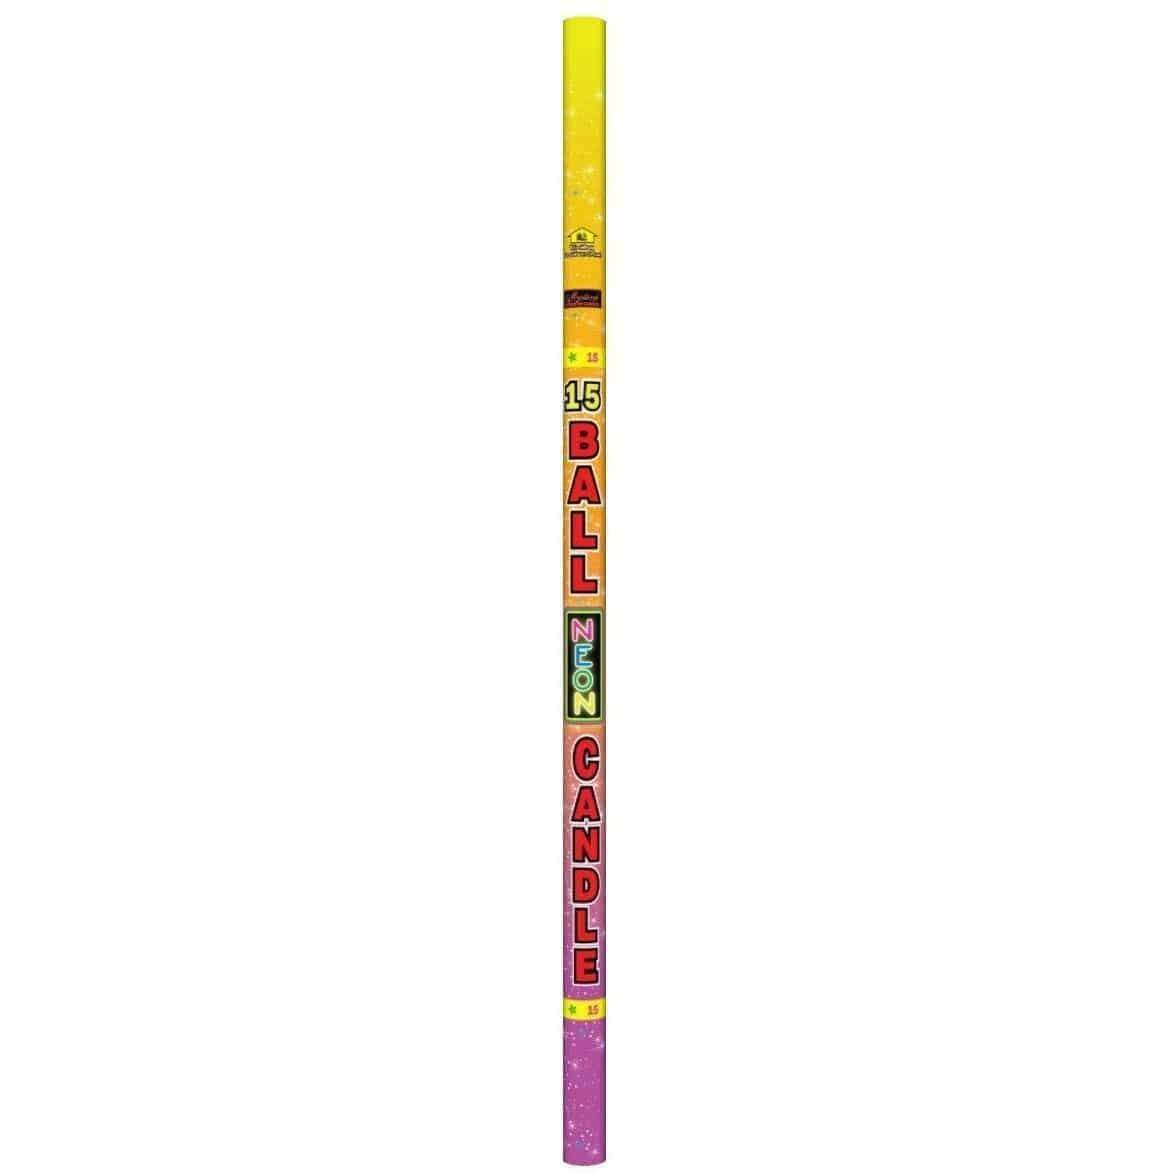 Mystical Fireworks Roman Candles 15 Ball Roman Candle